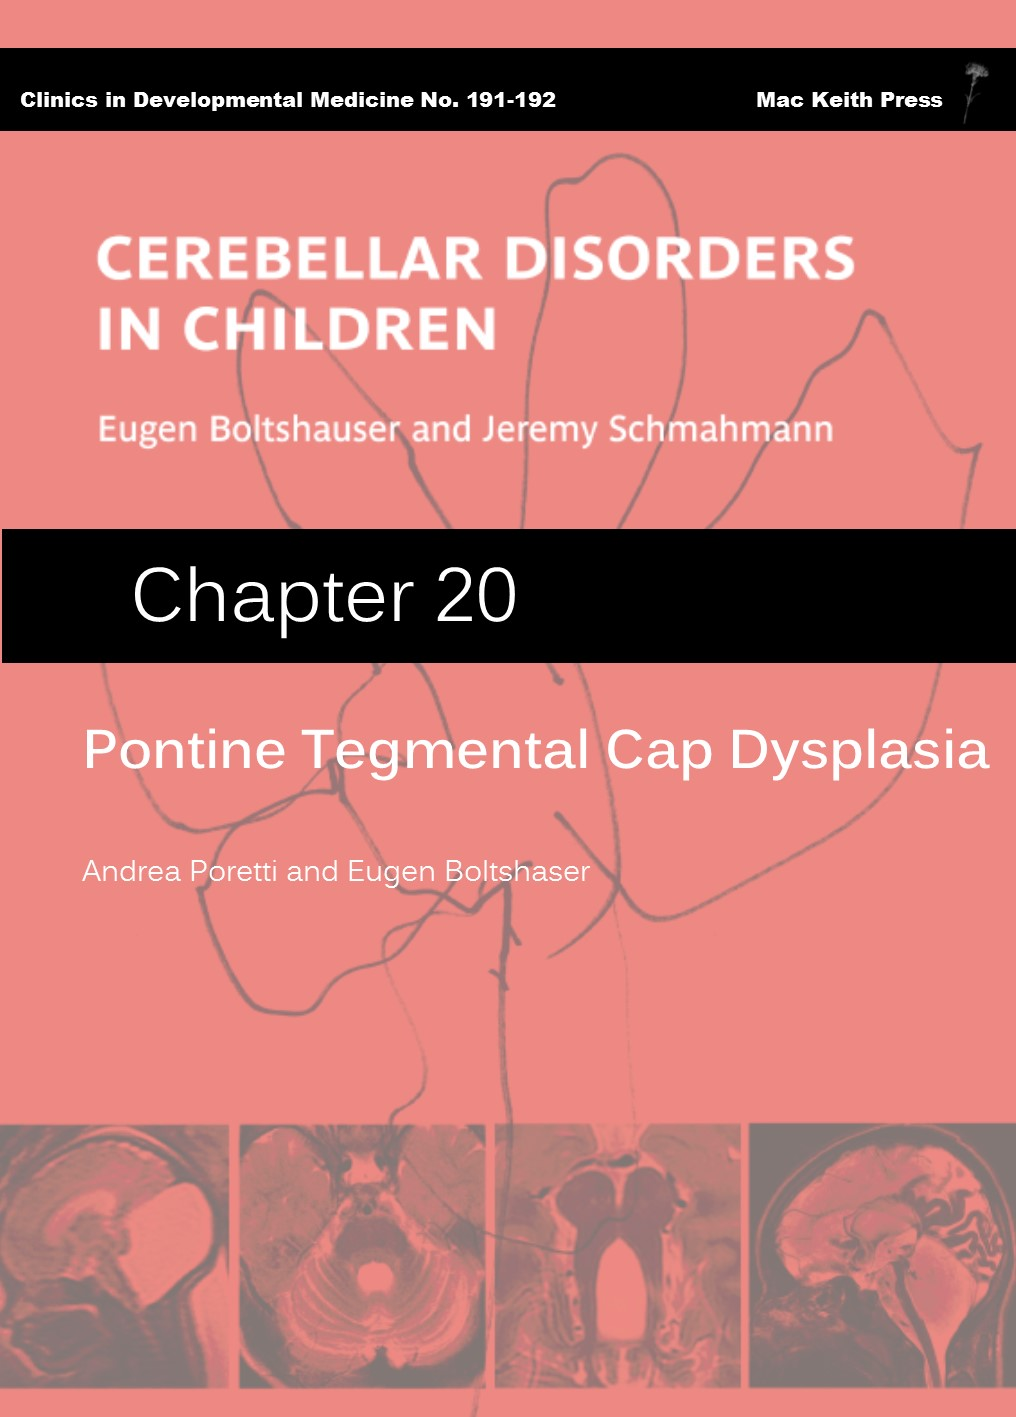 Pontine Tegmental Cap Dysplasia - Cerebellar Disorders in Children (Chapter 20) COVER